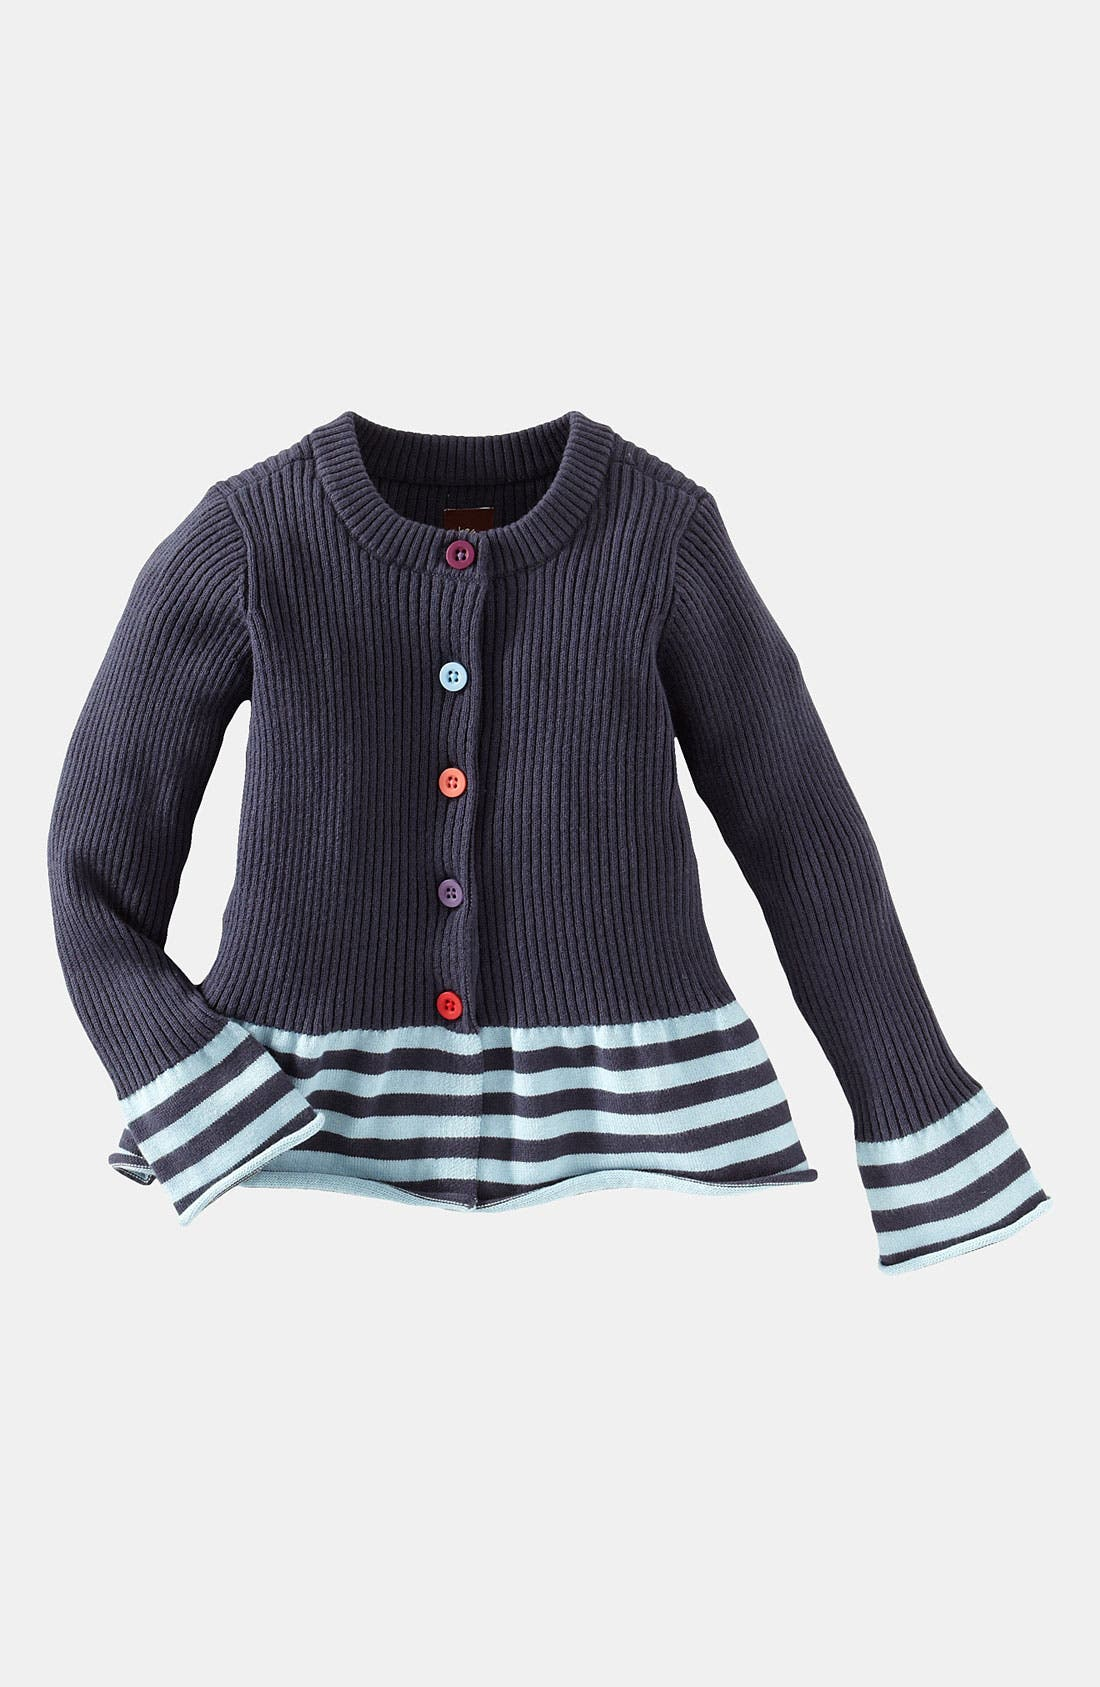 Main Image - Tea Collection 'Bongani' Stripe Sweater (Little Girls & Big Girls)